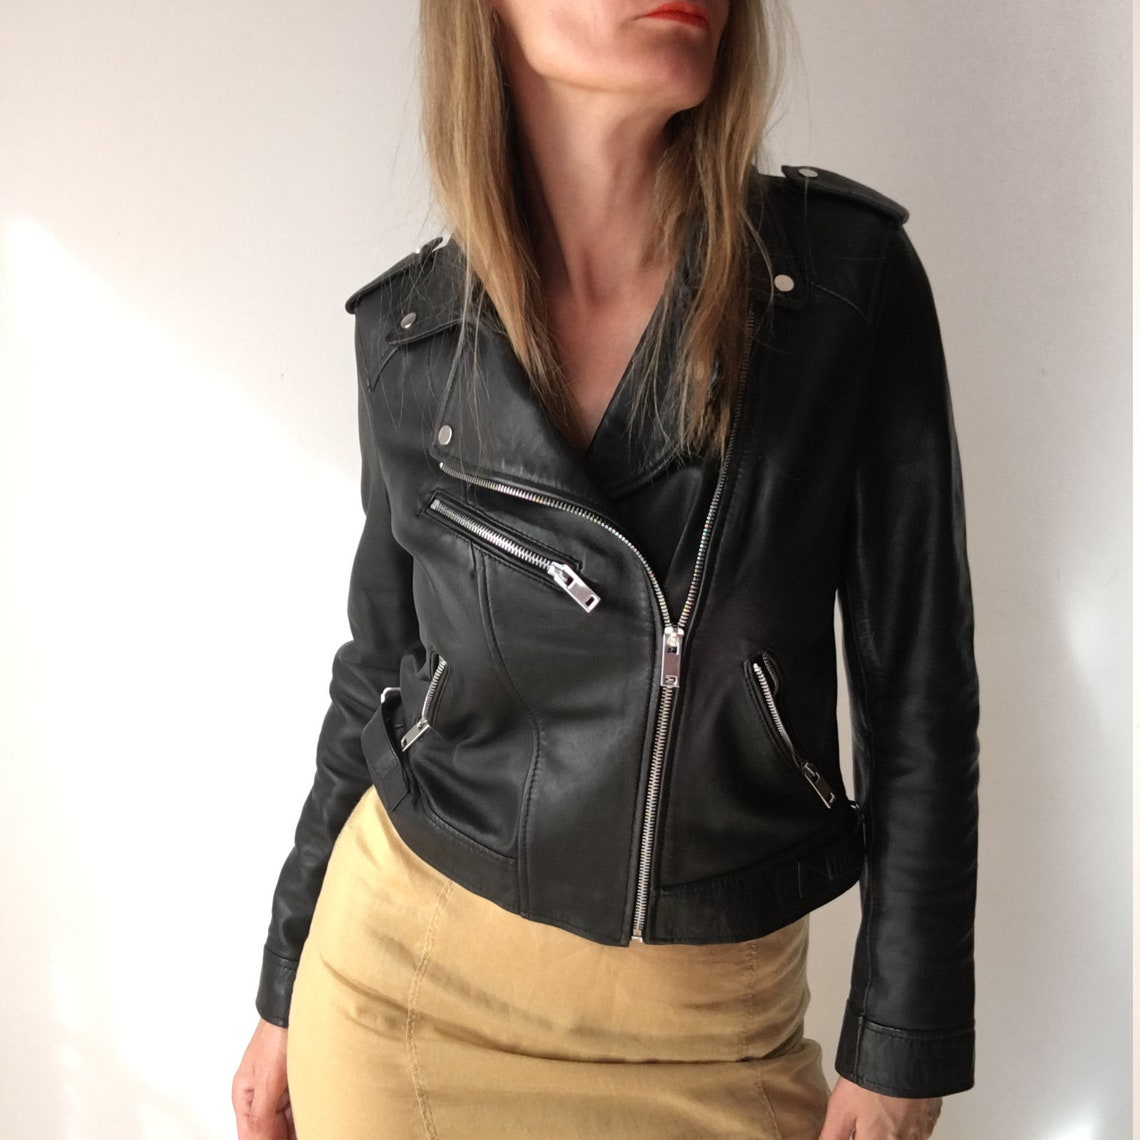 100% Real Leather Black Jacket For Women, M Size.